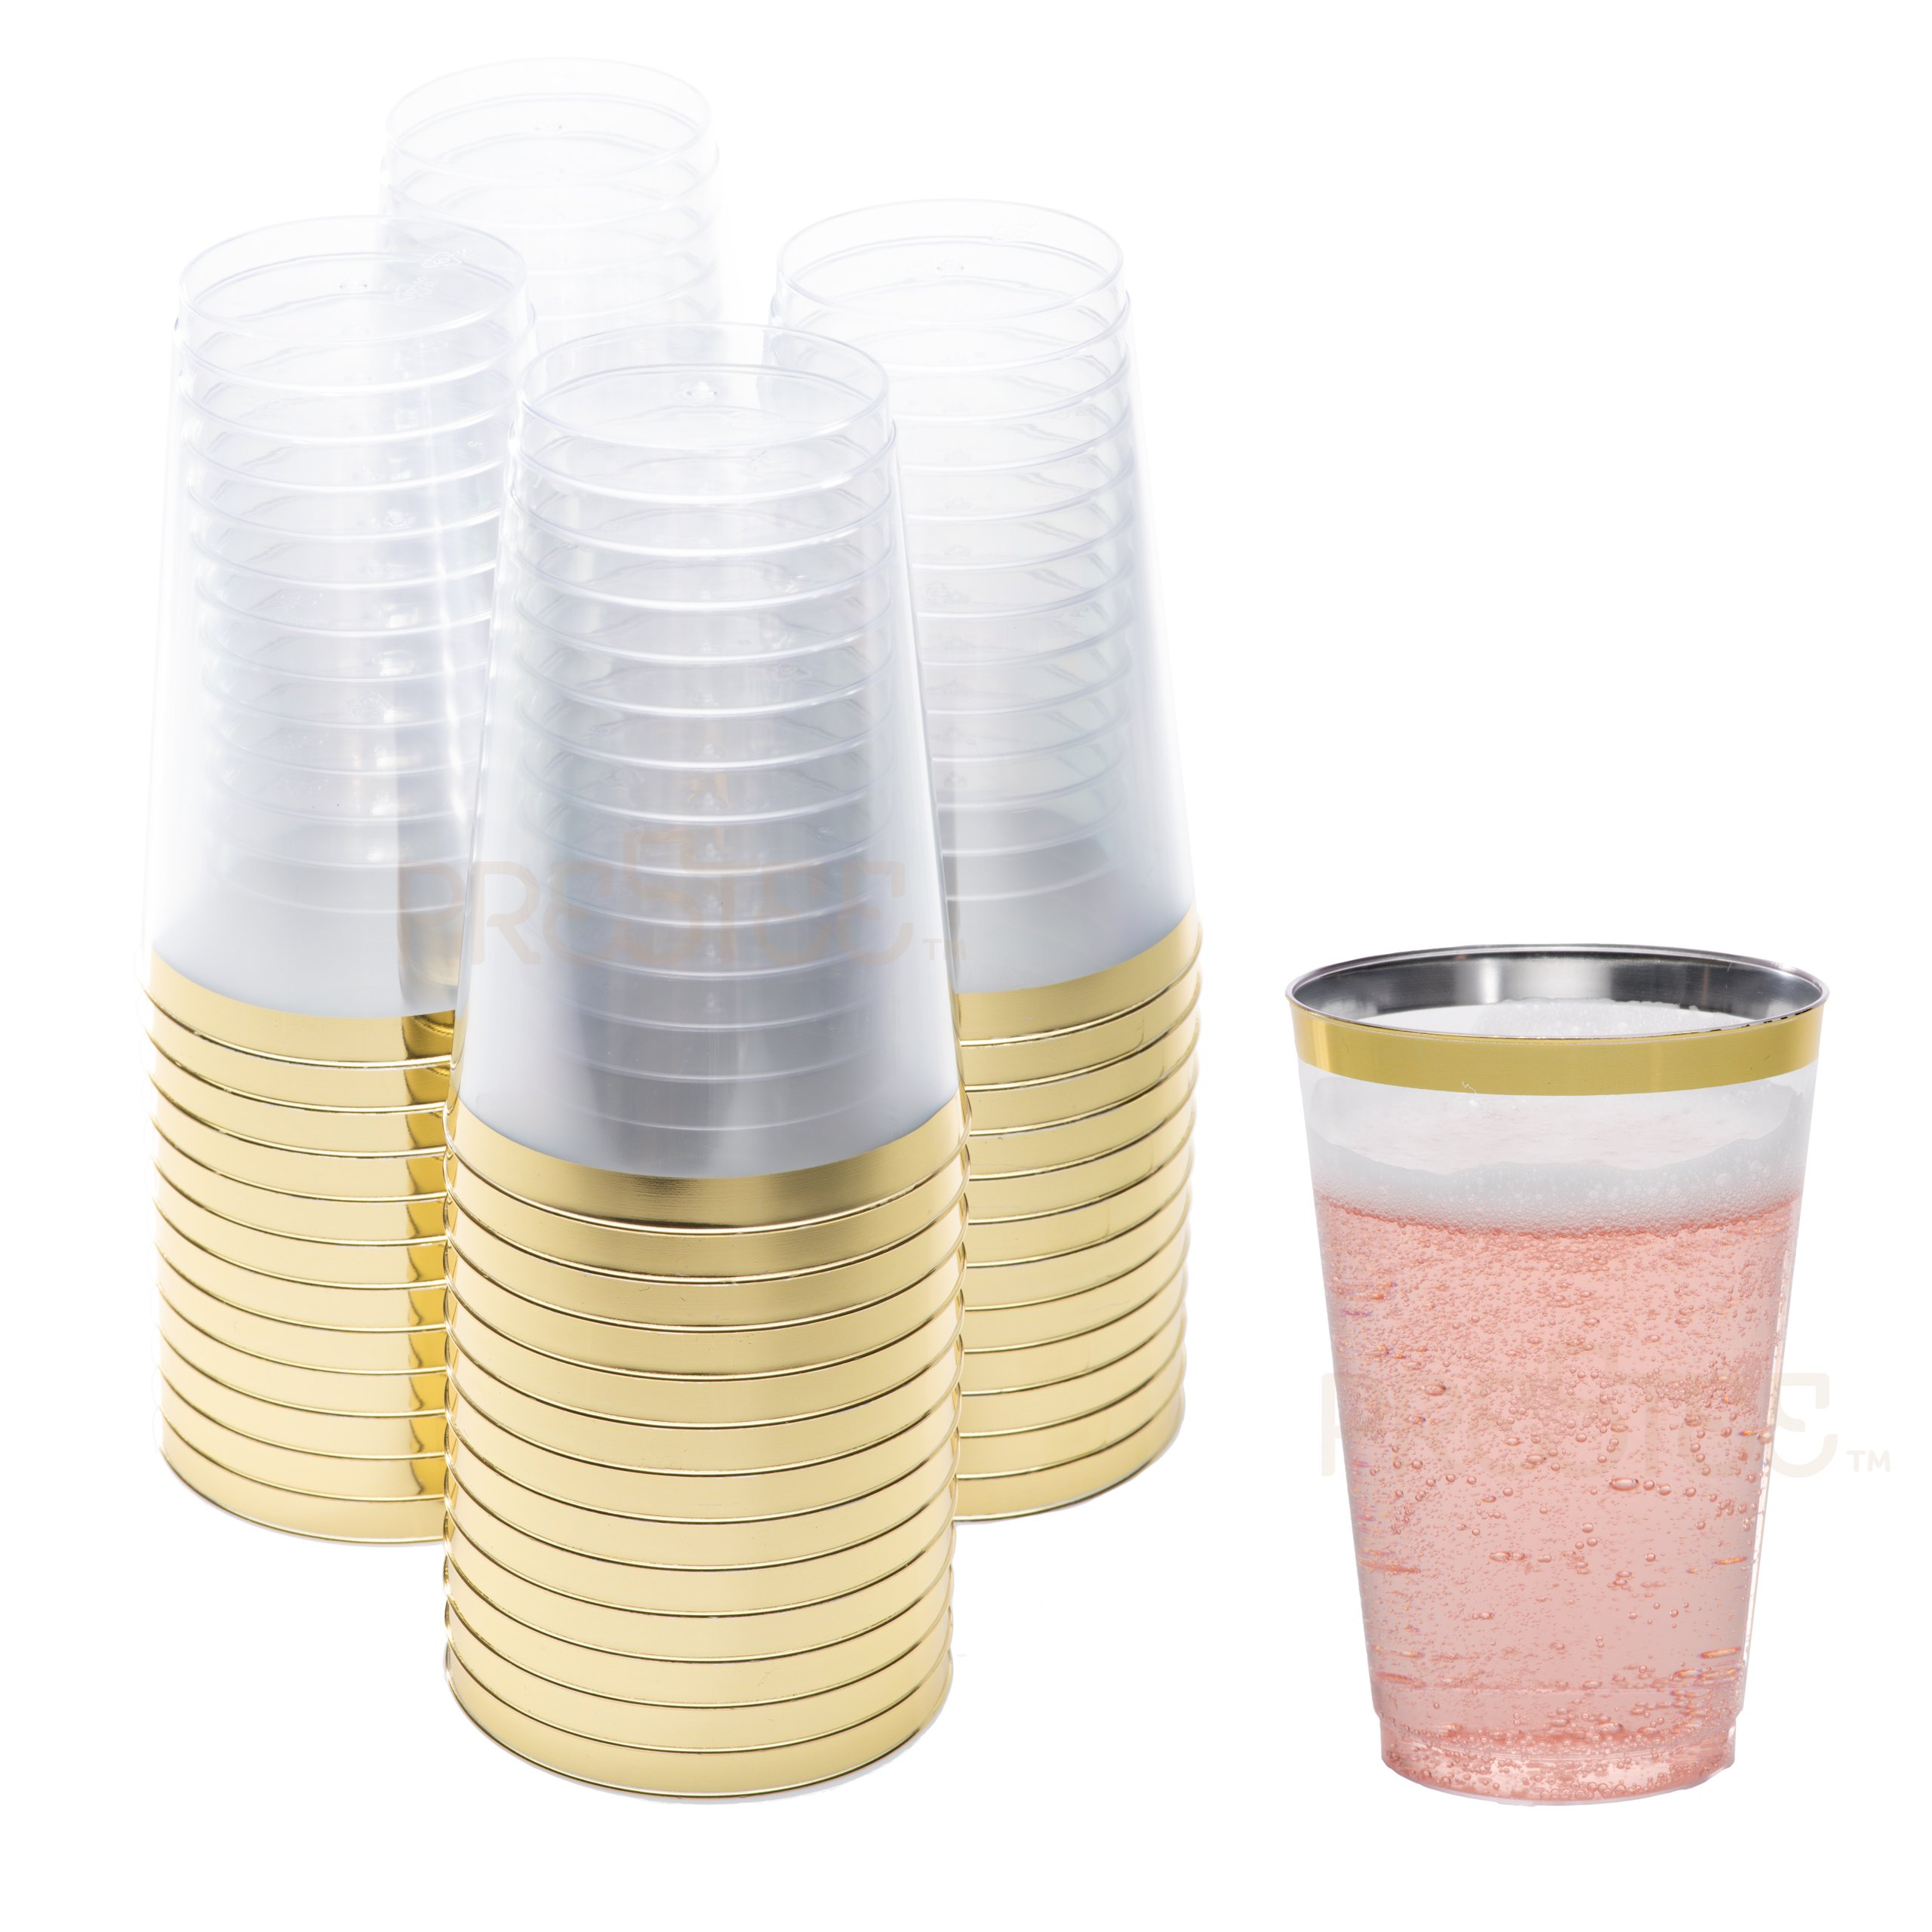 DRINKET Gold Plastic Cups 14 oz Clear Plastic Cups / Tumblers Fancy Plastic Wedding Cups With Gold Rim 50 Ct Disposable For Party Holiday and Occasions SUPER VALUE PACK